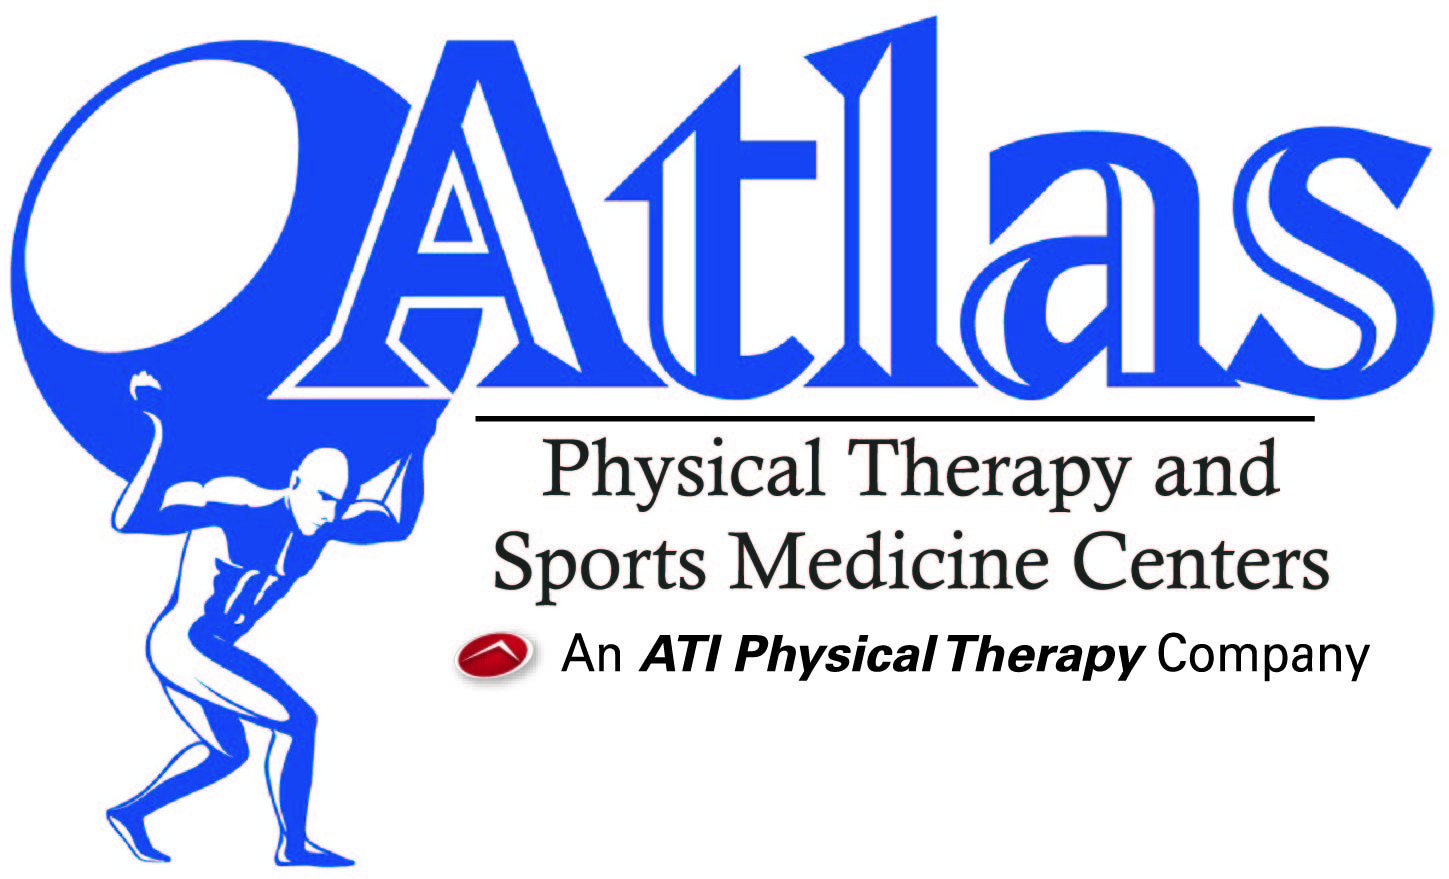 Excel physical therapy - Atlas Physical Therapy And Sports Medicine Centers Has Joined Ati Physical Therapy